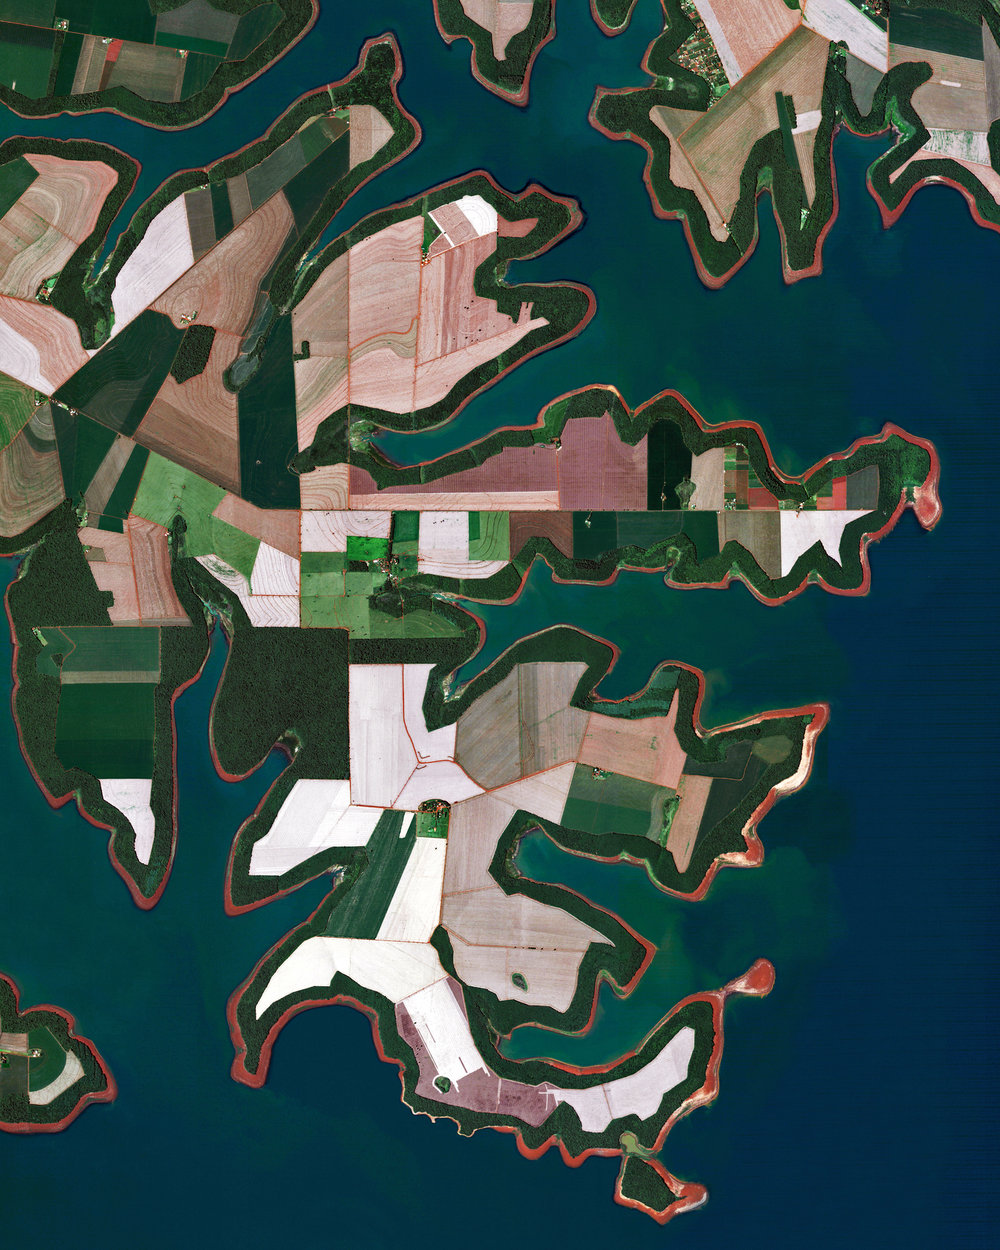 "Agricultural fields line the shores of the Itaipu Reservoir — a body of water that forms the border between Brazil and Paraguay. The area's tropical climate makes it an ideal place to grow sugarcane, coffee, tea, and cotton.  25°18'20.3""S, 54°25'12.6""W  Source imagery: DigitalGlobe"